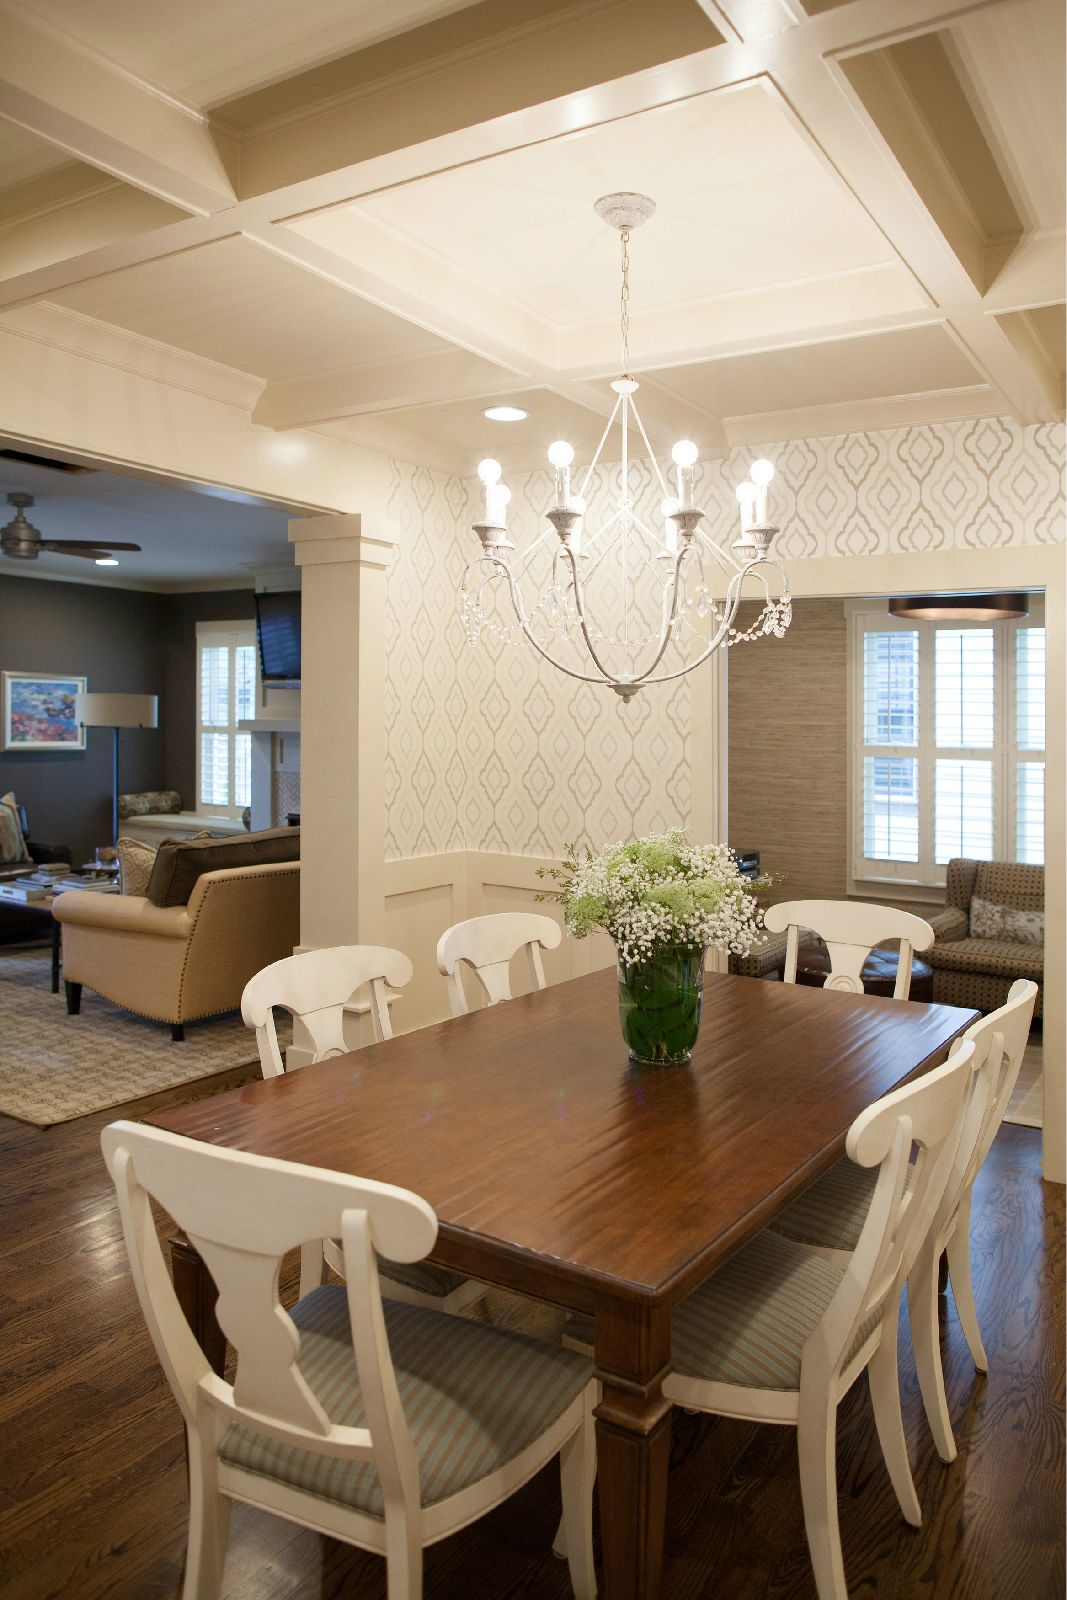 Dining room coffered ceiling sherwin williams panda white